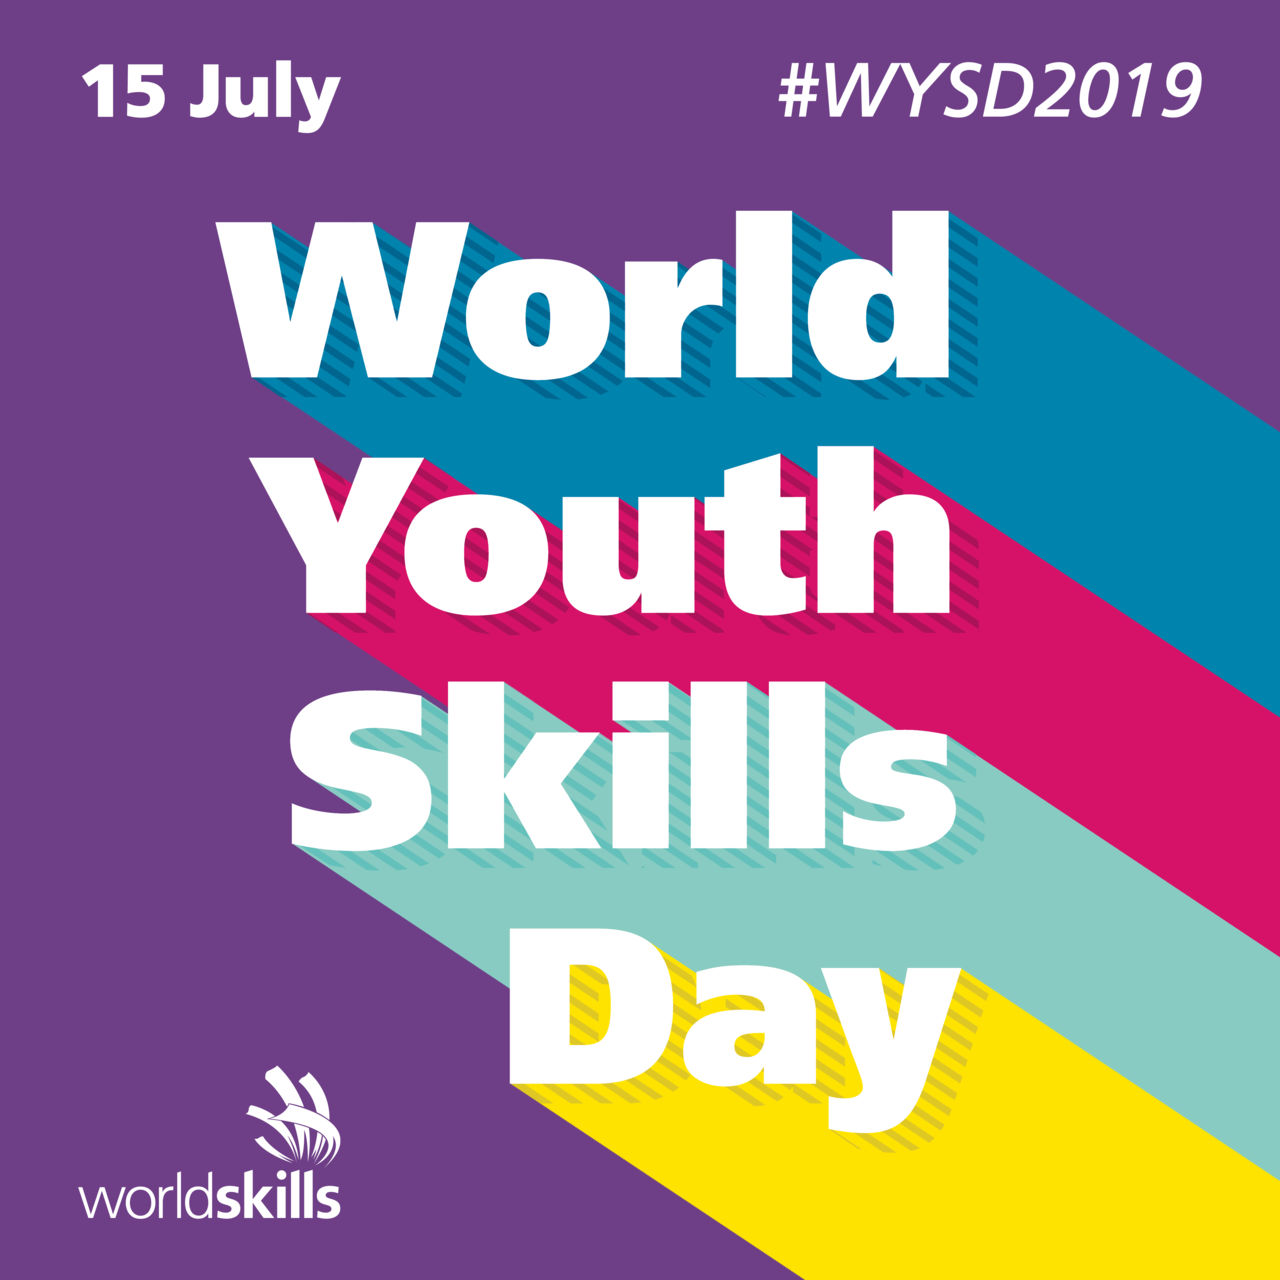 World Youth Skills Day - 15 July